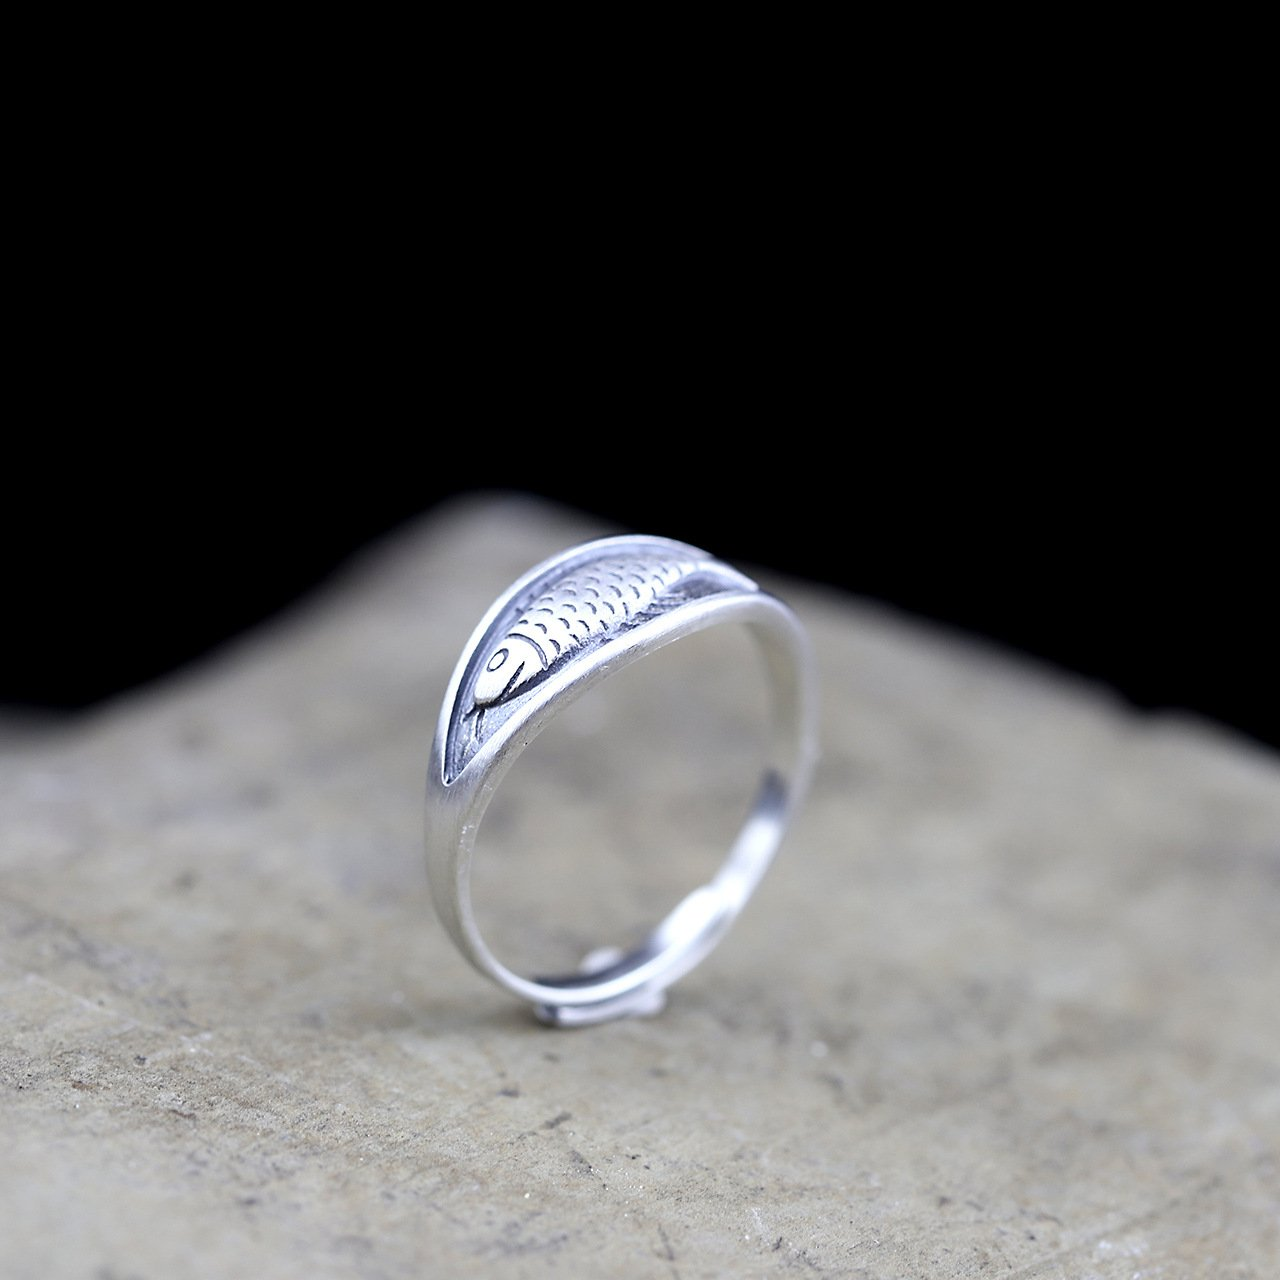 Handmade Little Fish Open Ring